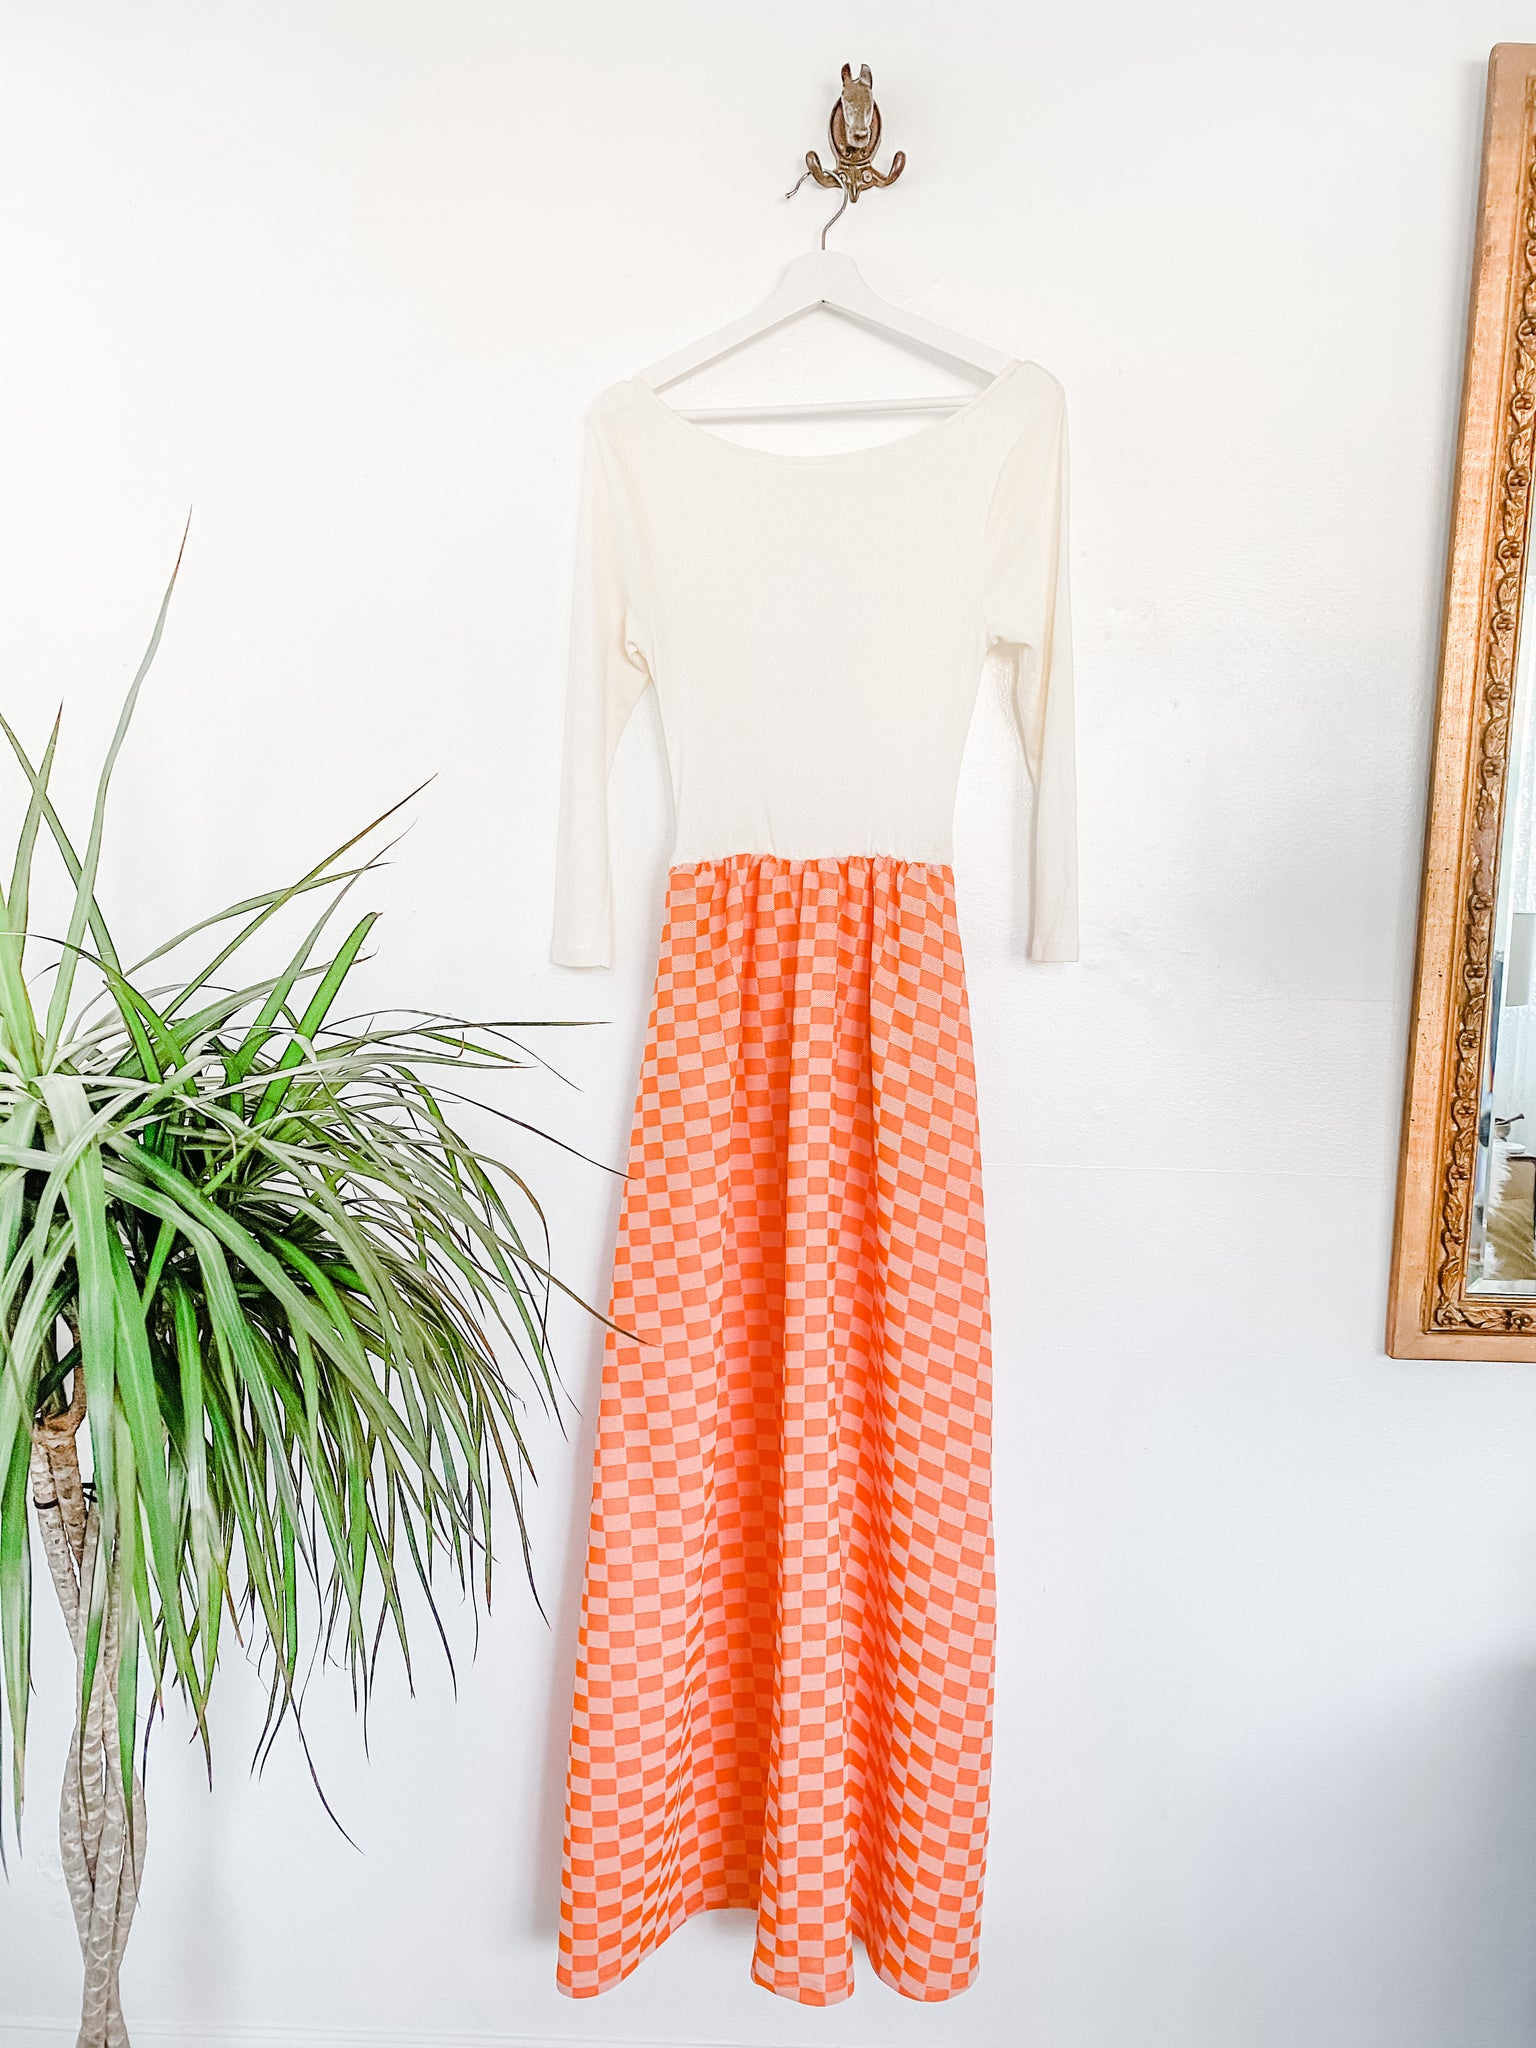 Together Dress in Vintage Orange with pockets